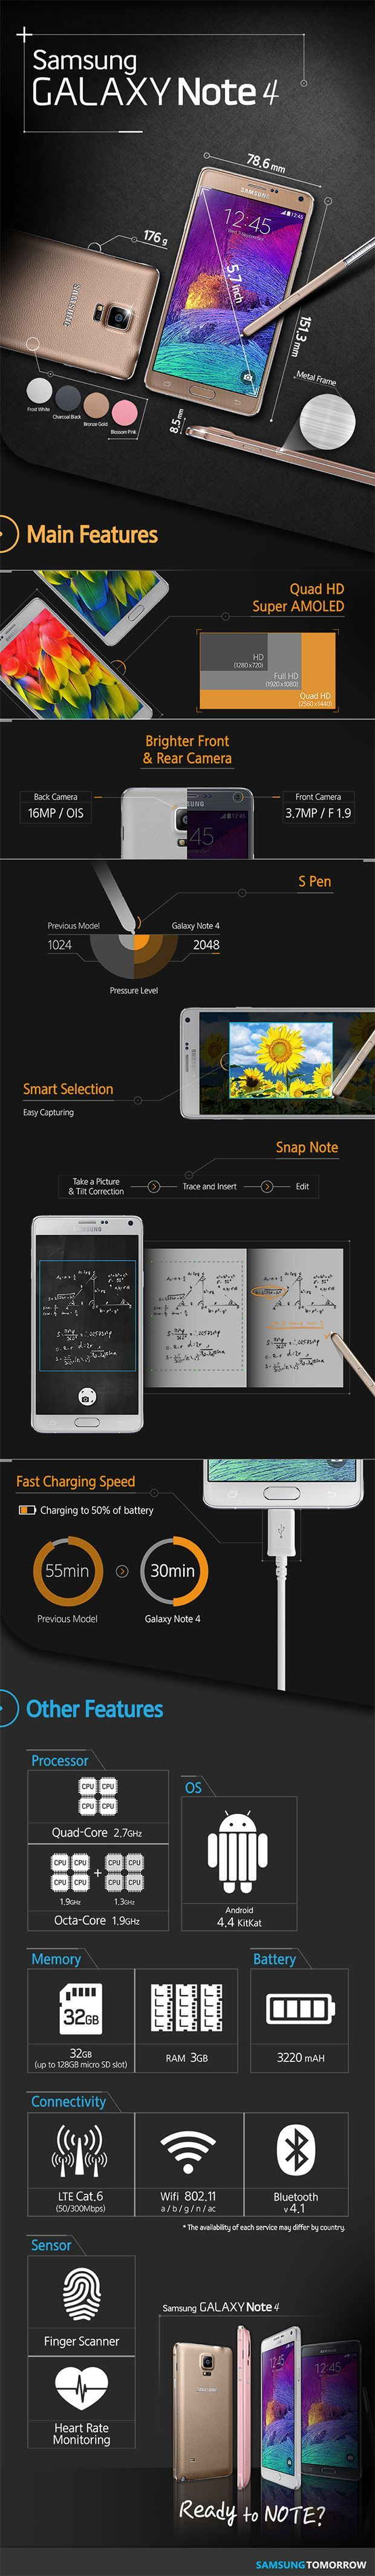 Galaxy Note 4. Can't wait to get this!!